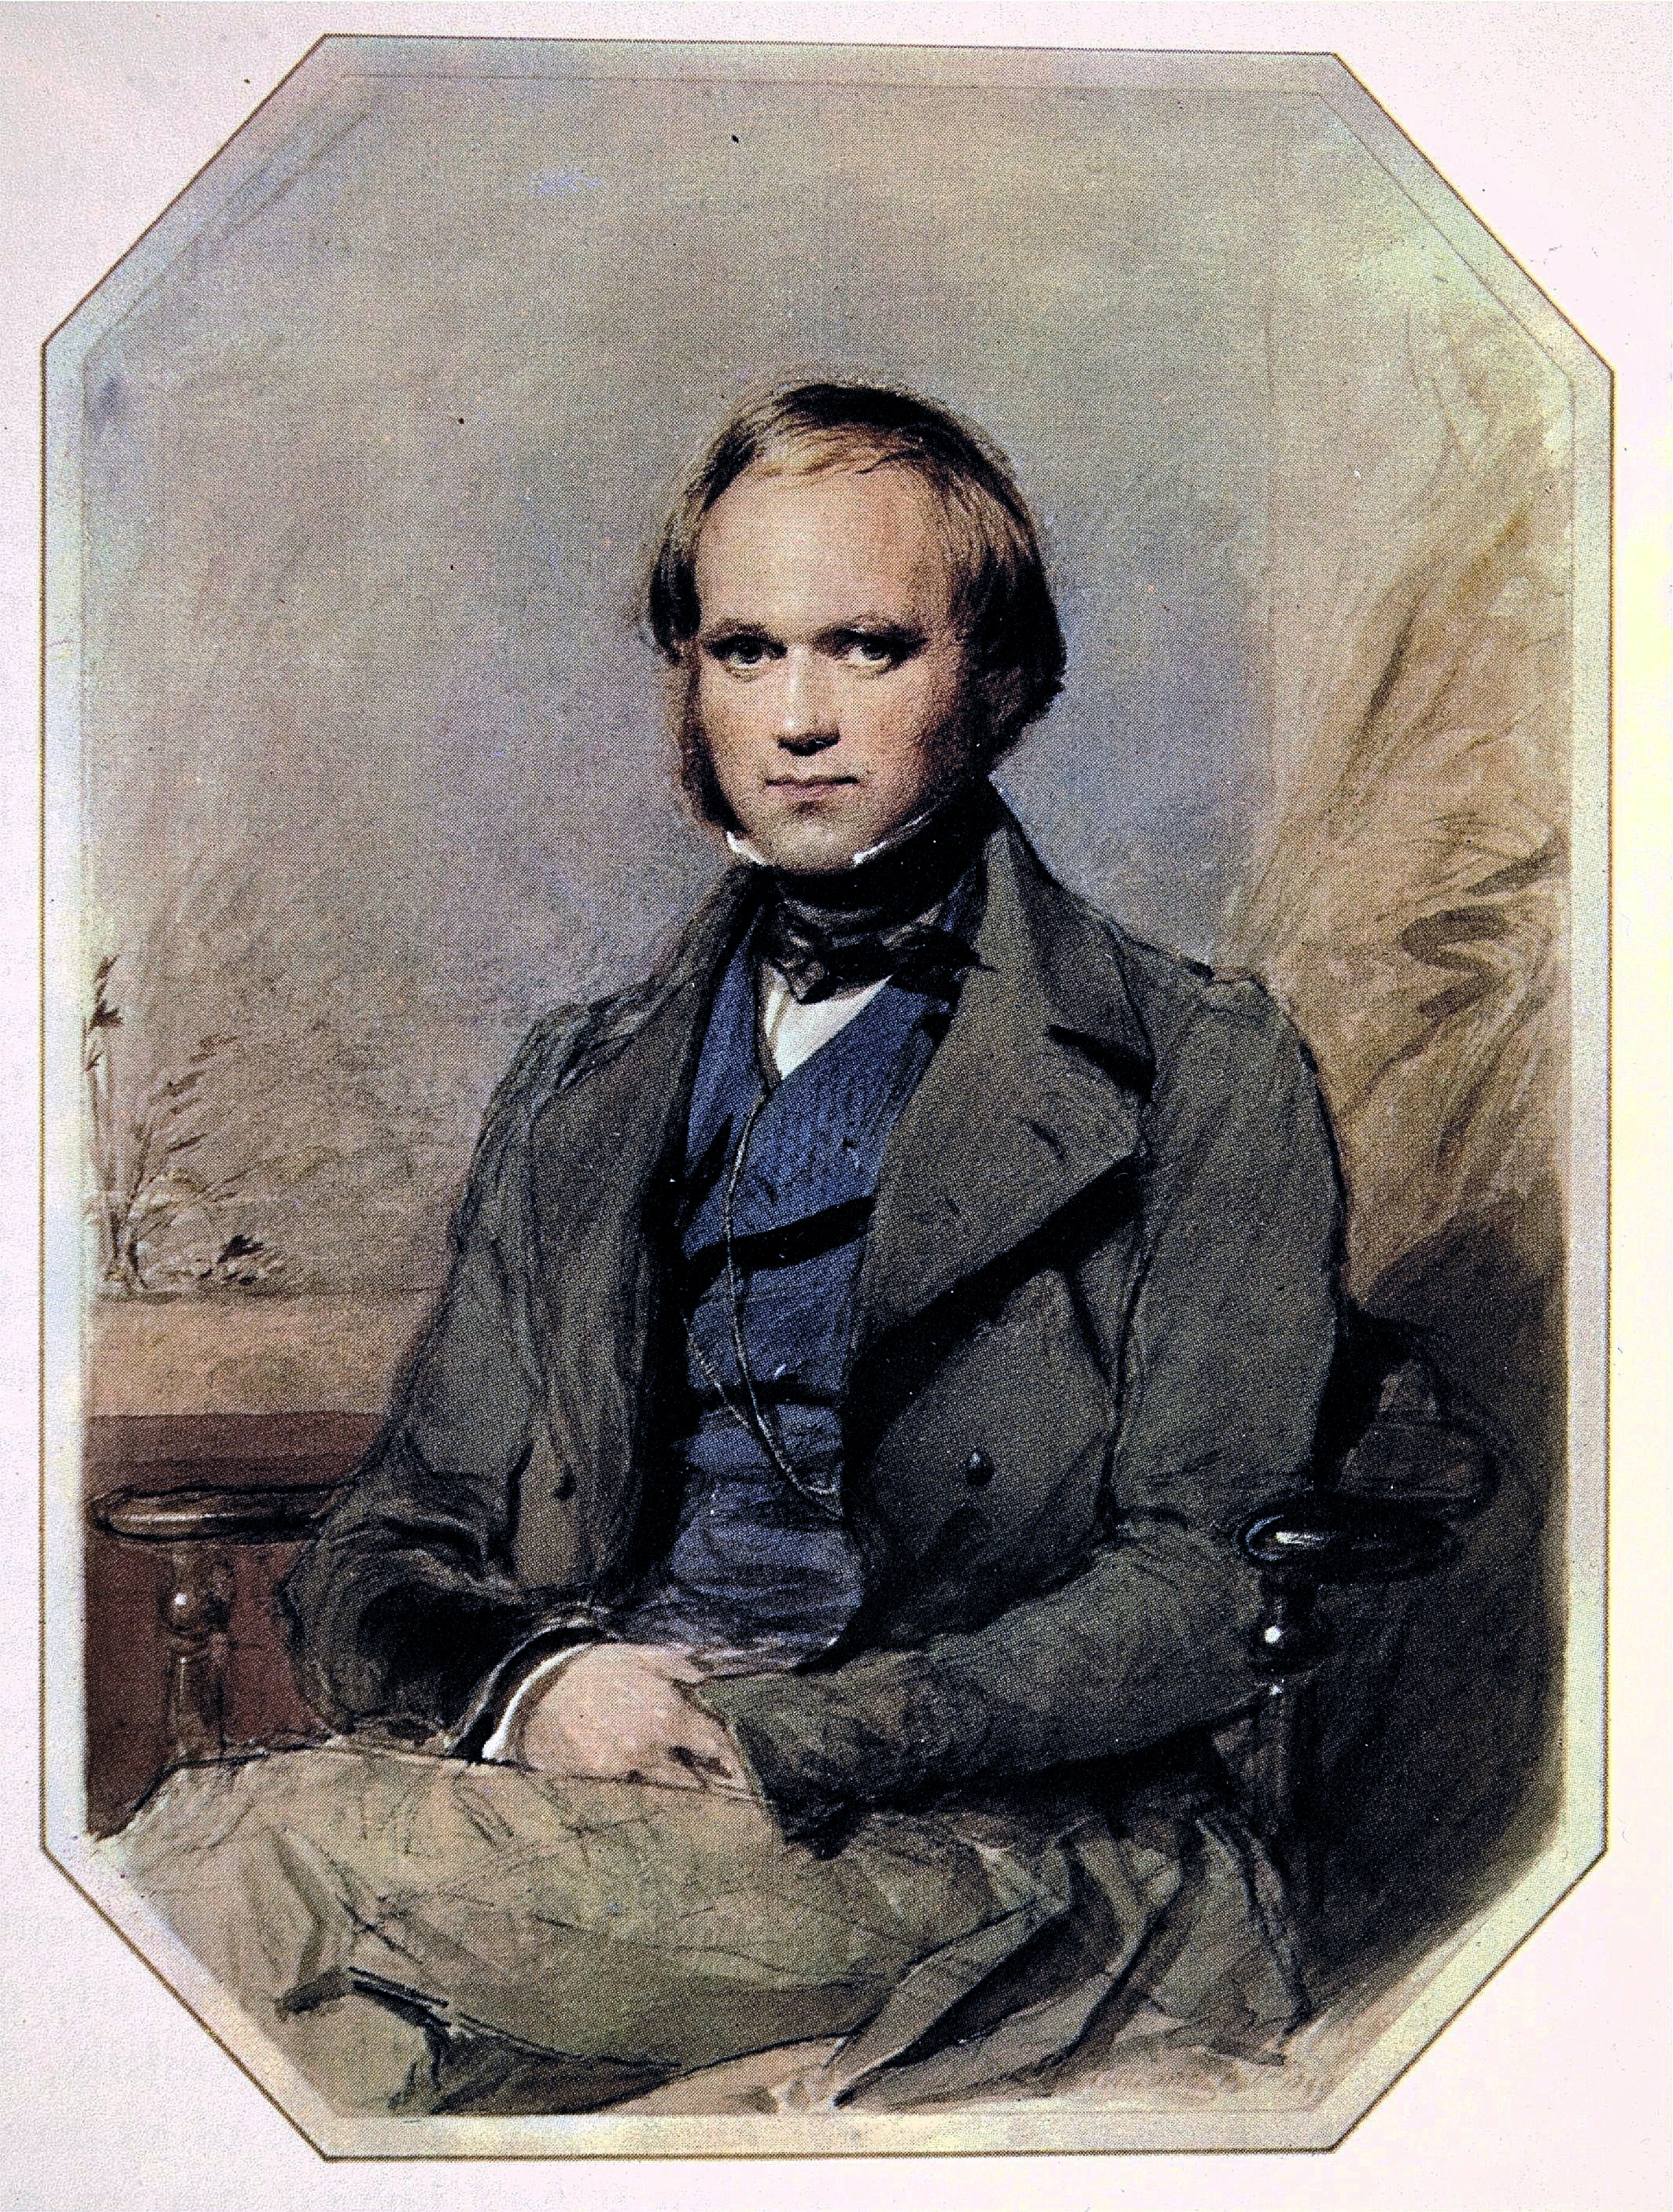 introduction to evolution charles darwin proposed the theory of evolution by natural selection